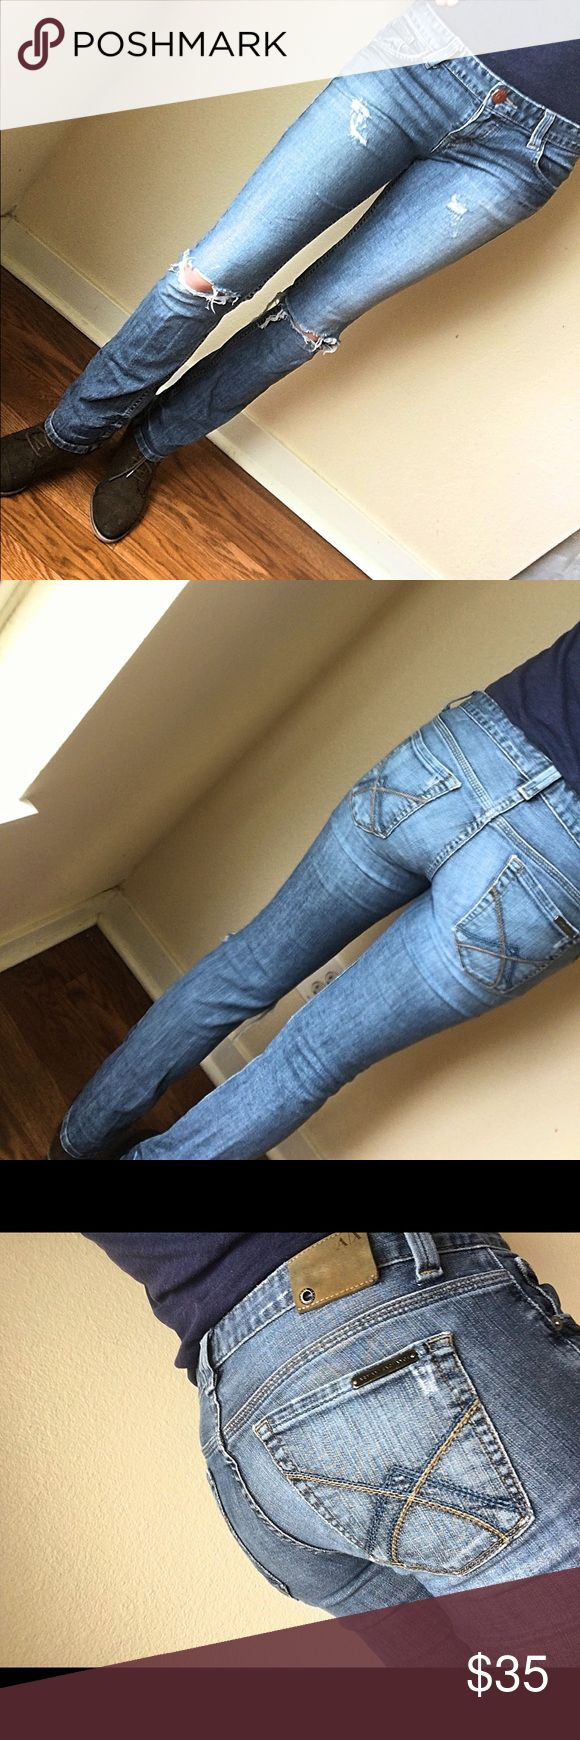 Armani Exchange straight jeans retail price 150.00 Armani Exchange jeans style: straight size: 4 inseam: 29 materials: 98% cotton 2% Elastane Pre-owned excellent condition looks new no stains A/X Armani Exchange Jeans Straight Leg